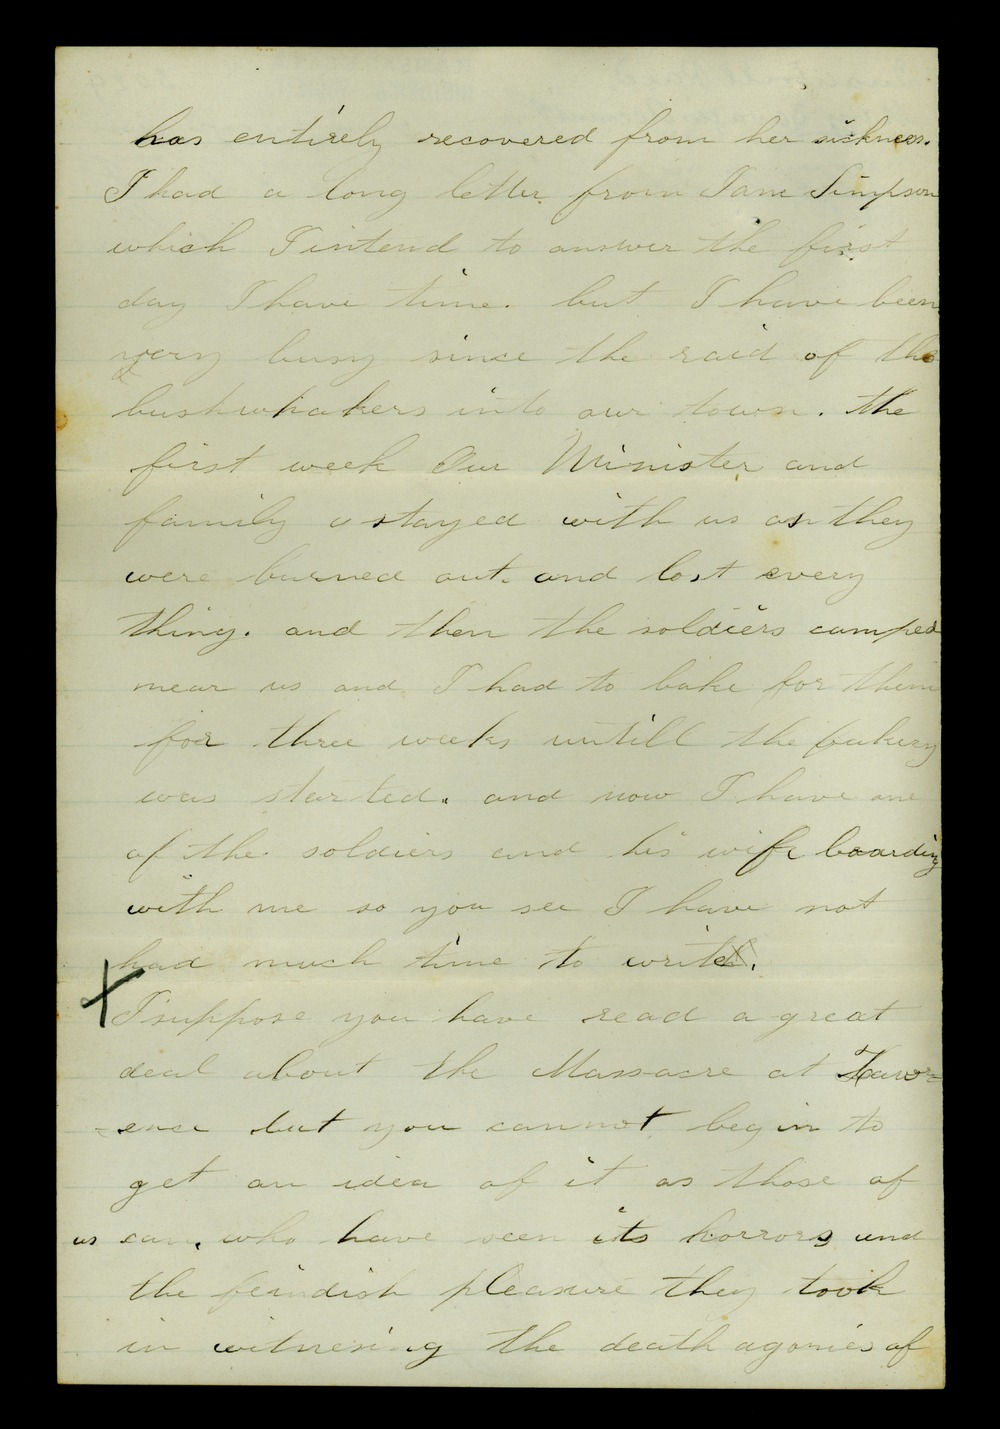 Mary Savage correspondence - 2